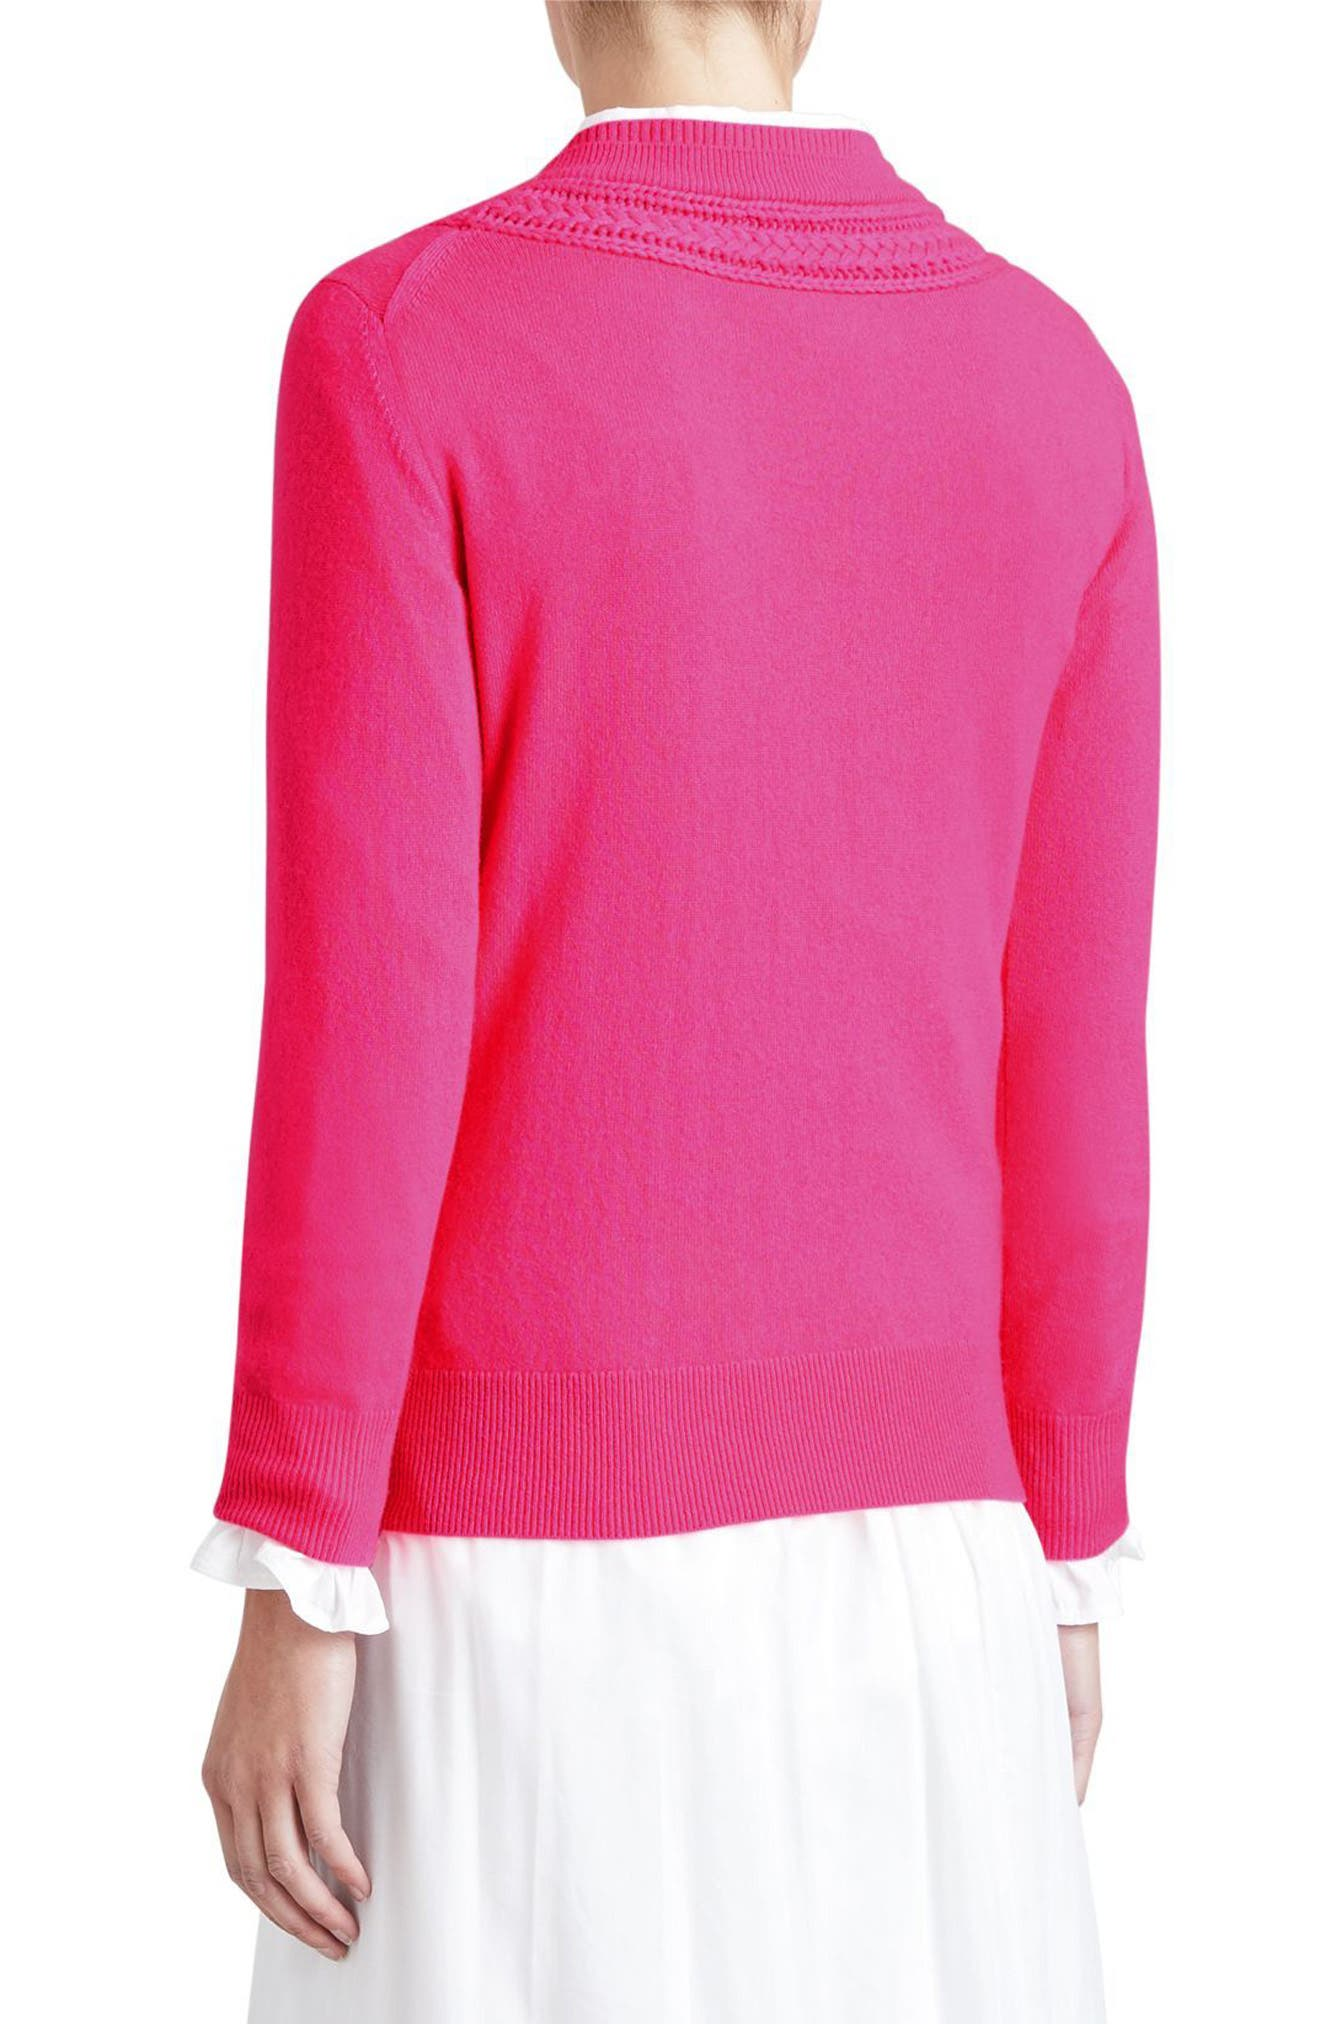 Guadaira Cashmere Sweater,                             Alternate thumbnail 3, color,                             Bright Rose Pink